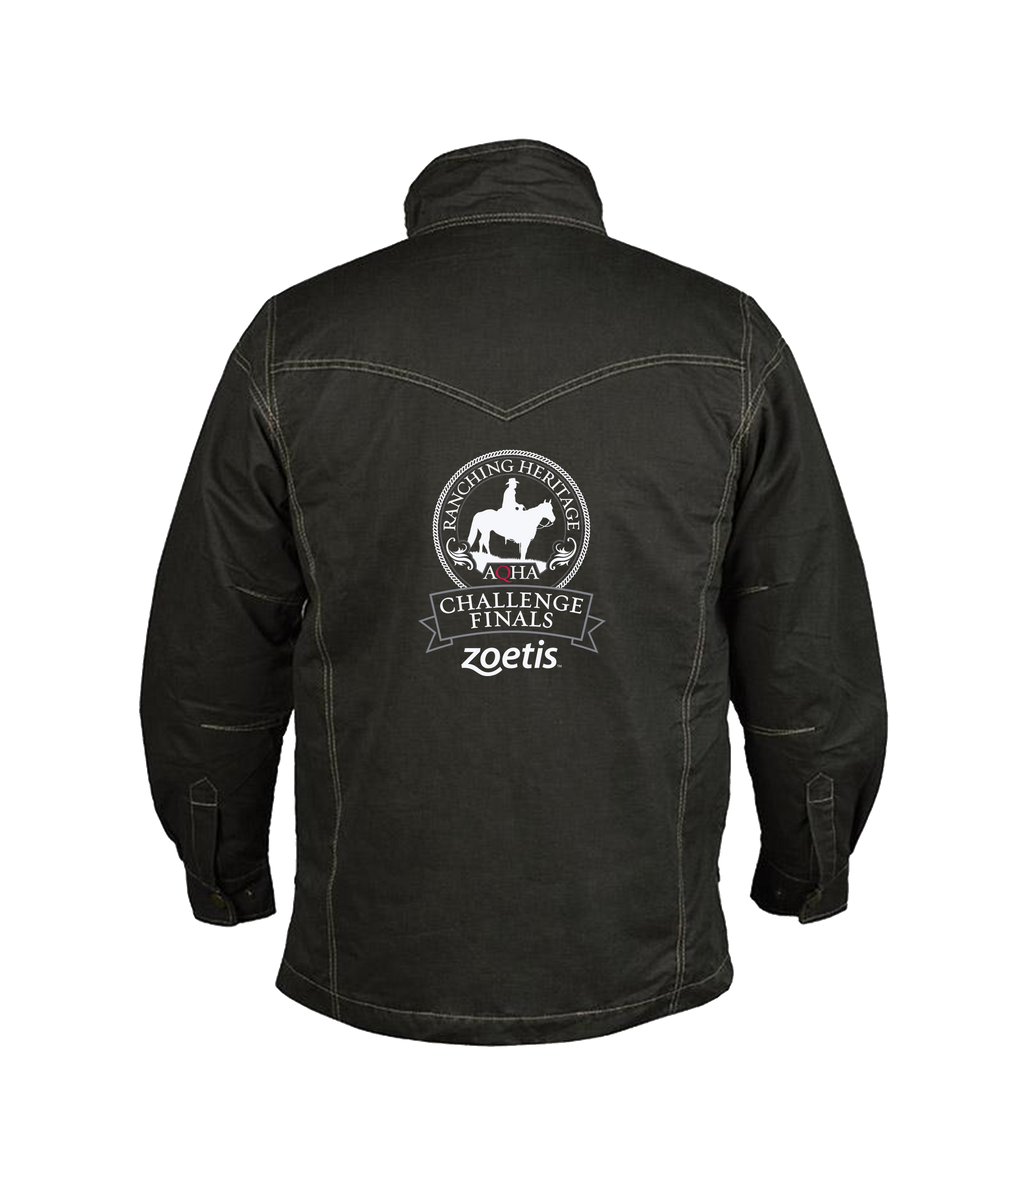 2019 Ranching Heritage Sundance Jacket Commemorative